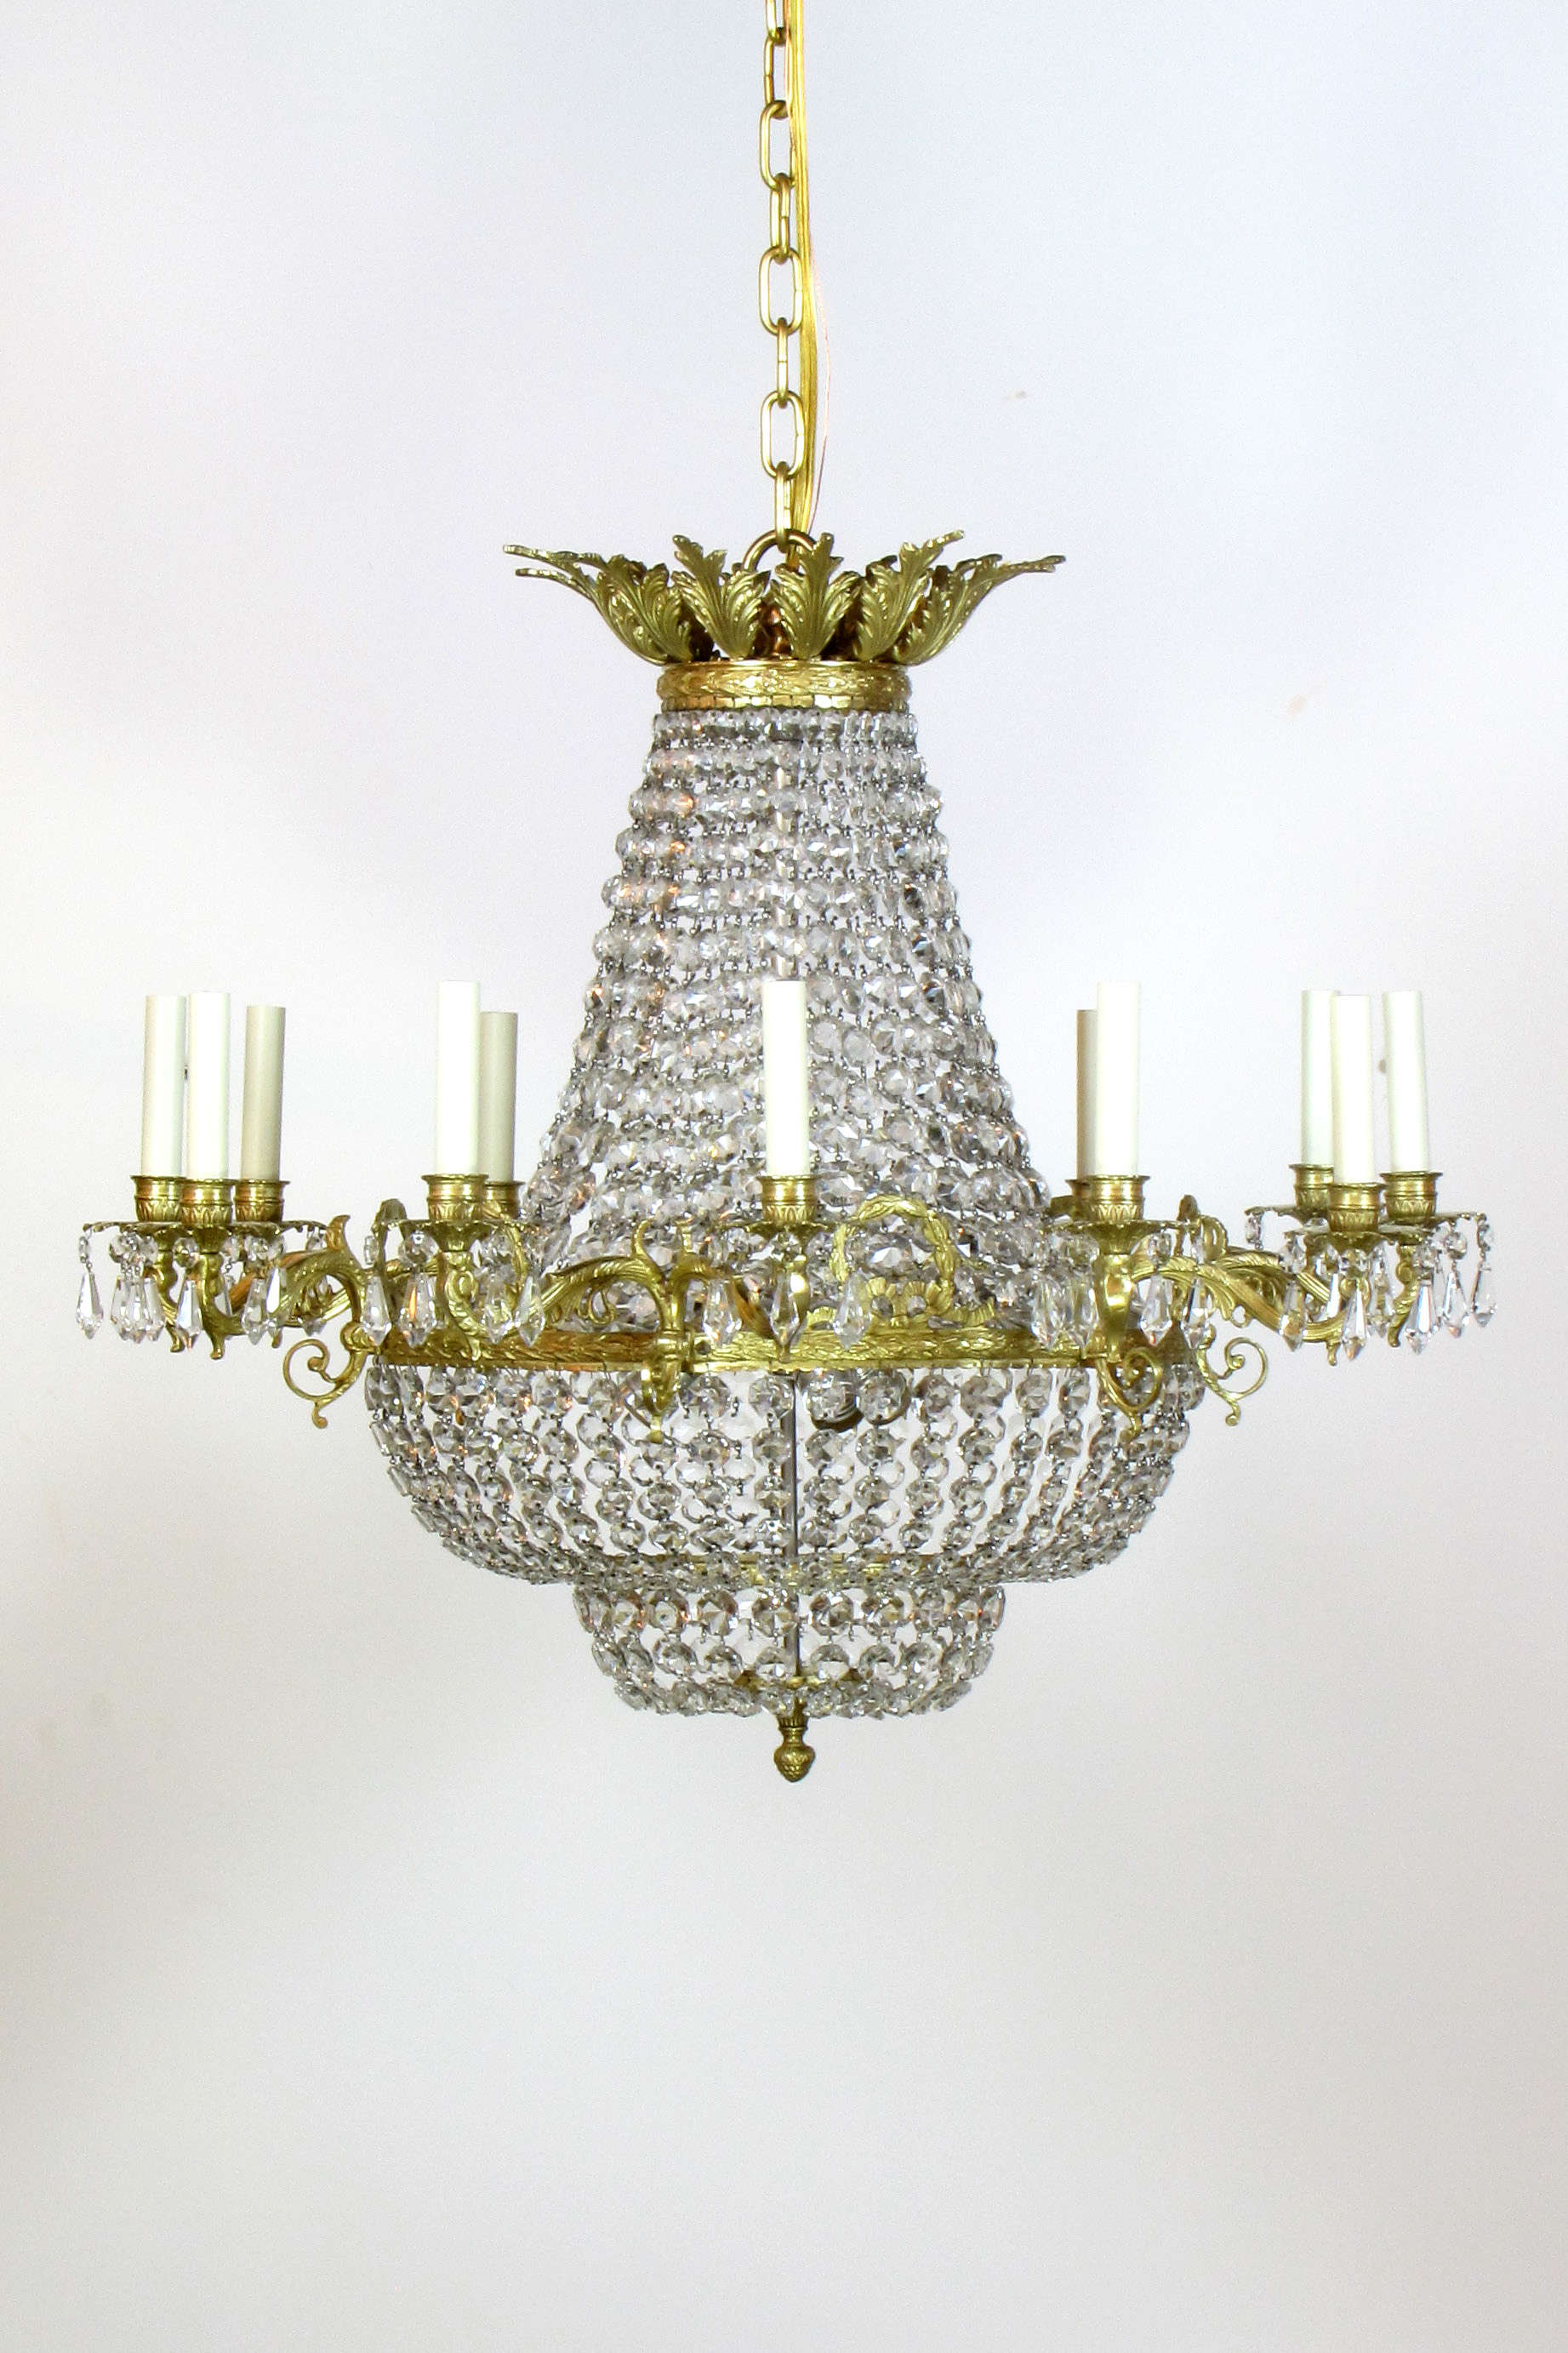 lighting p all flush ring fitting chandelier ceiling lights the crystal zoom and hold drag bhs to pan press image mae light